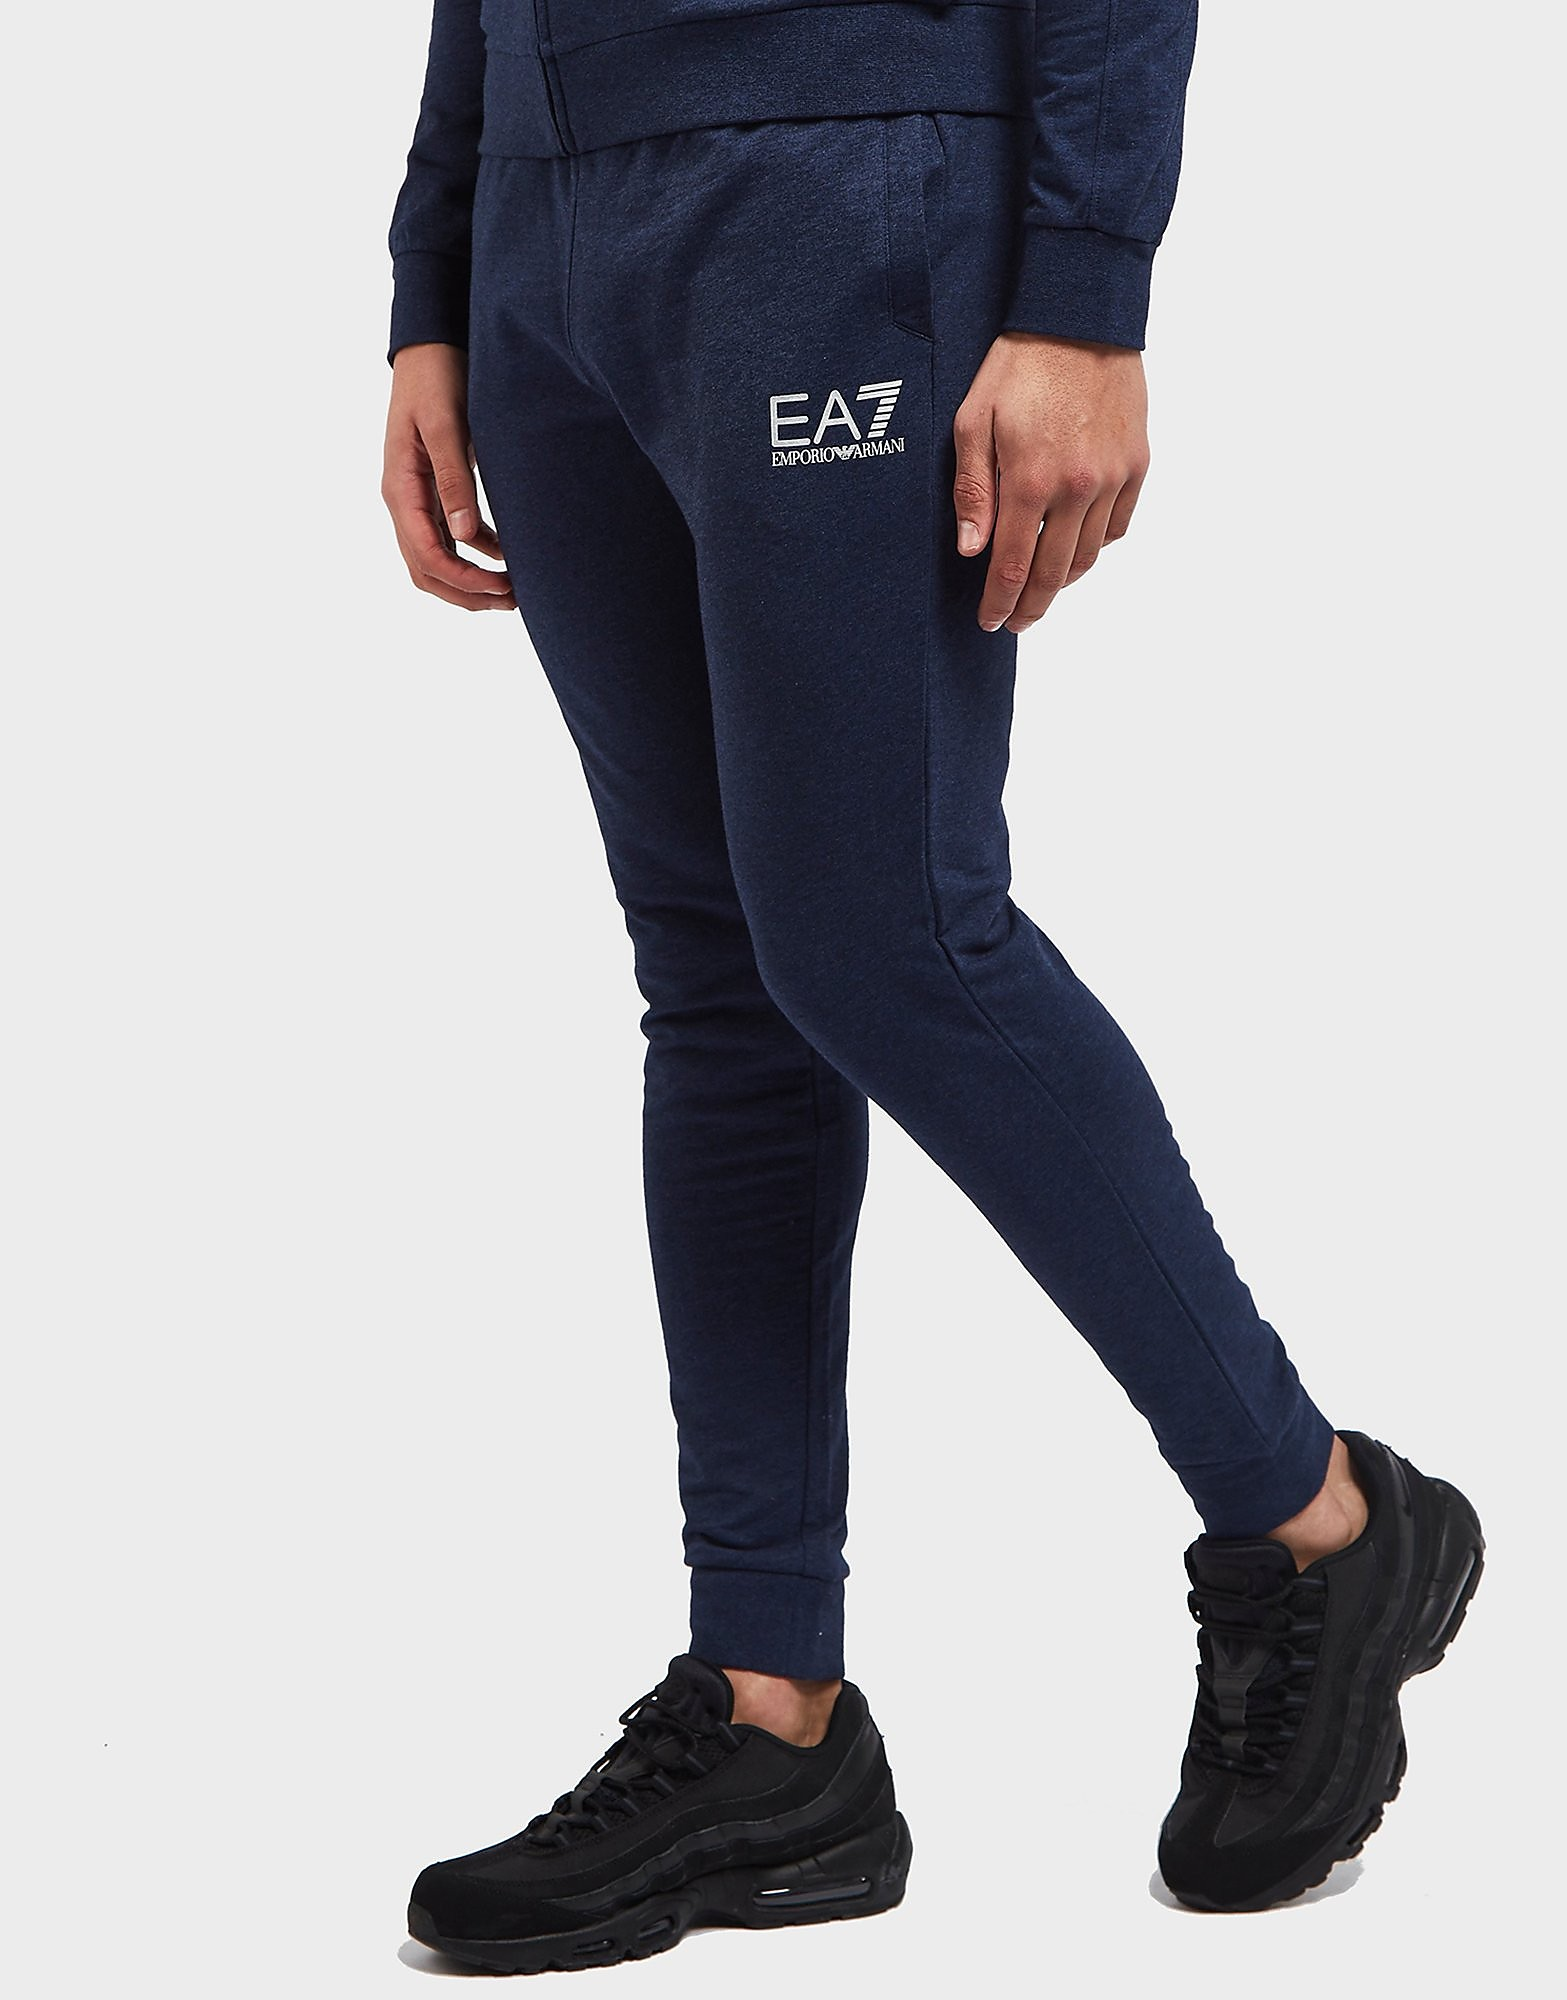 Emporio Armani EA7 Core Cuffed Fleece Pants